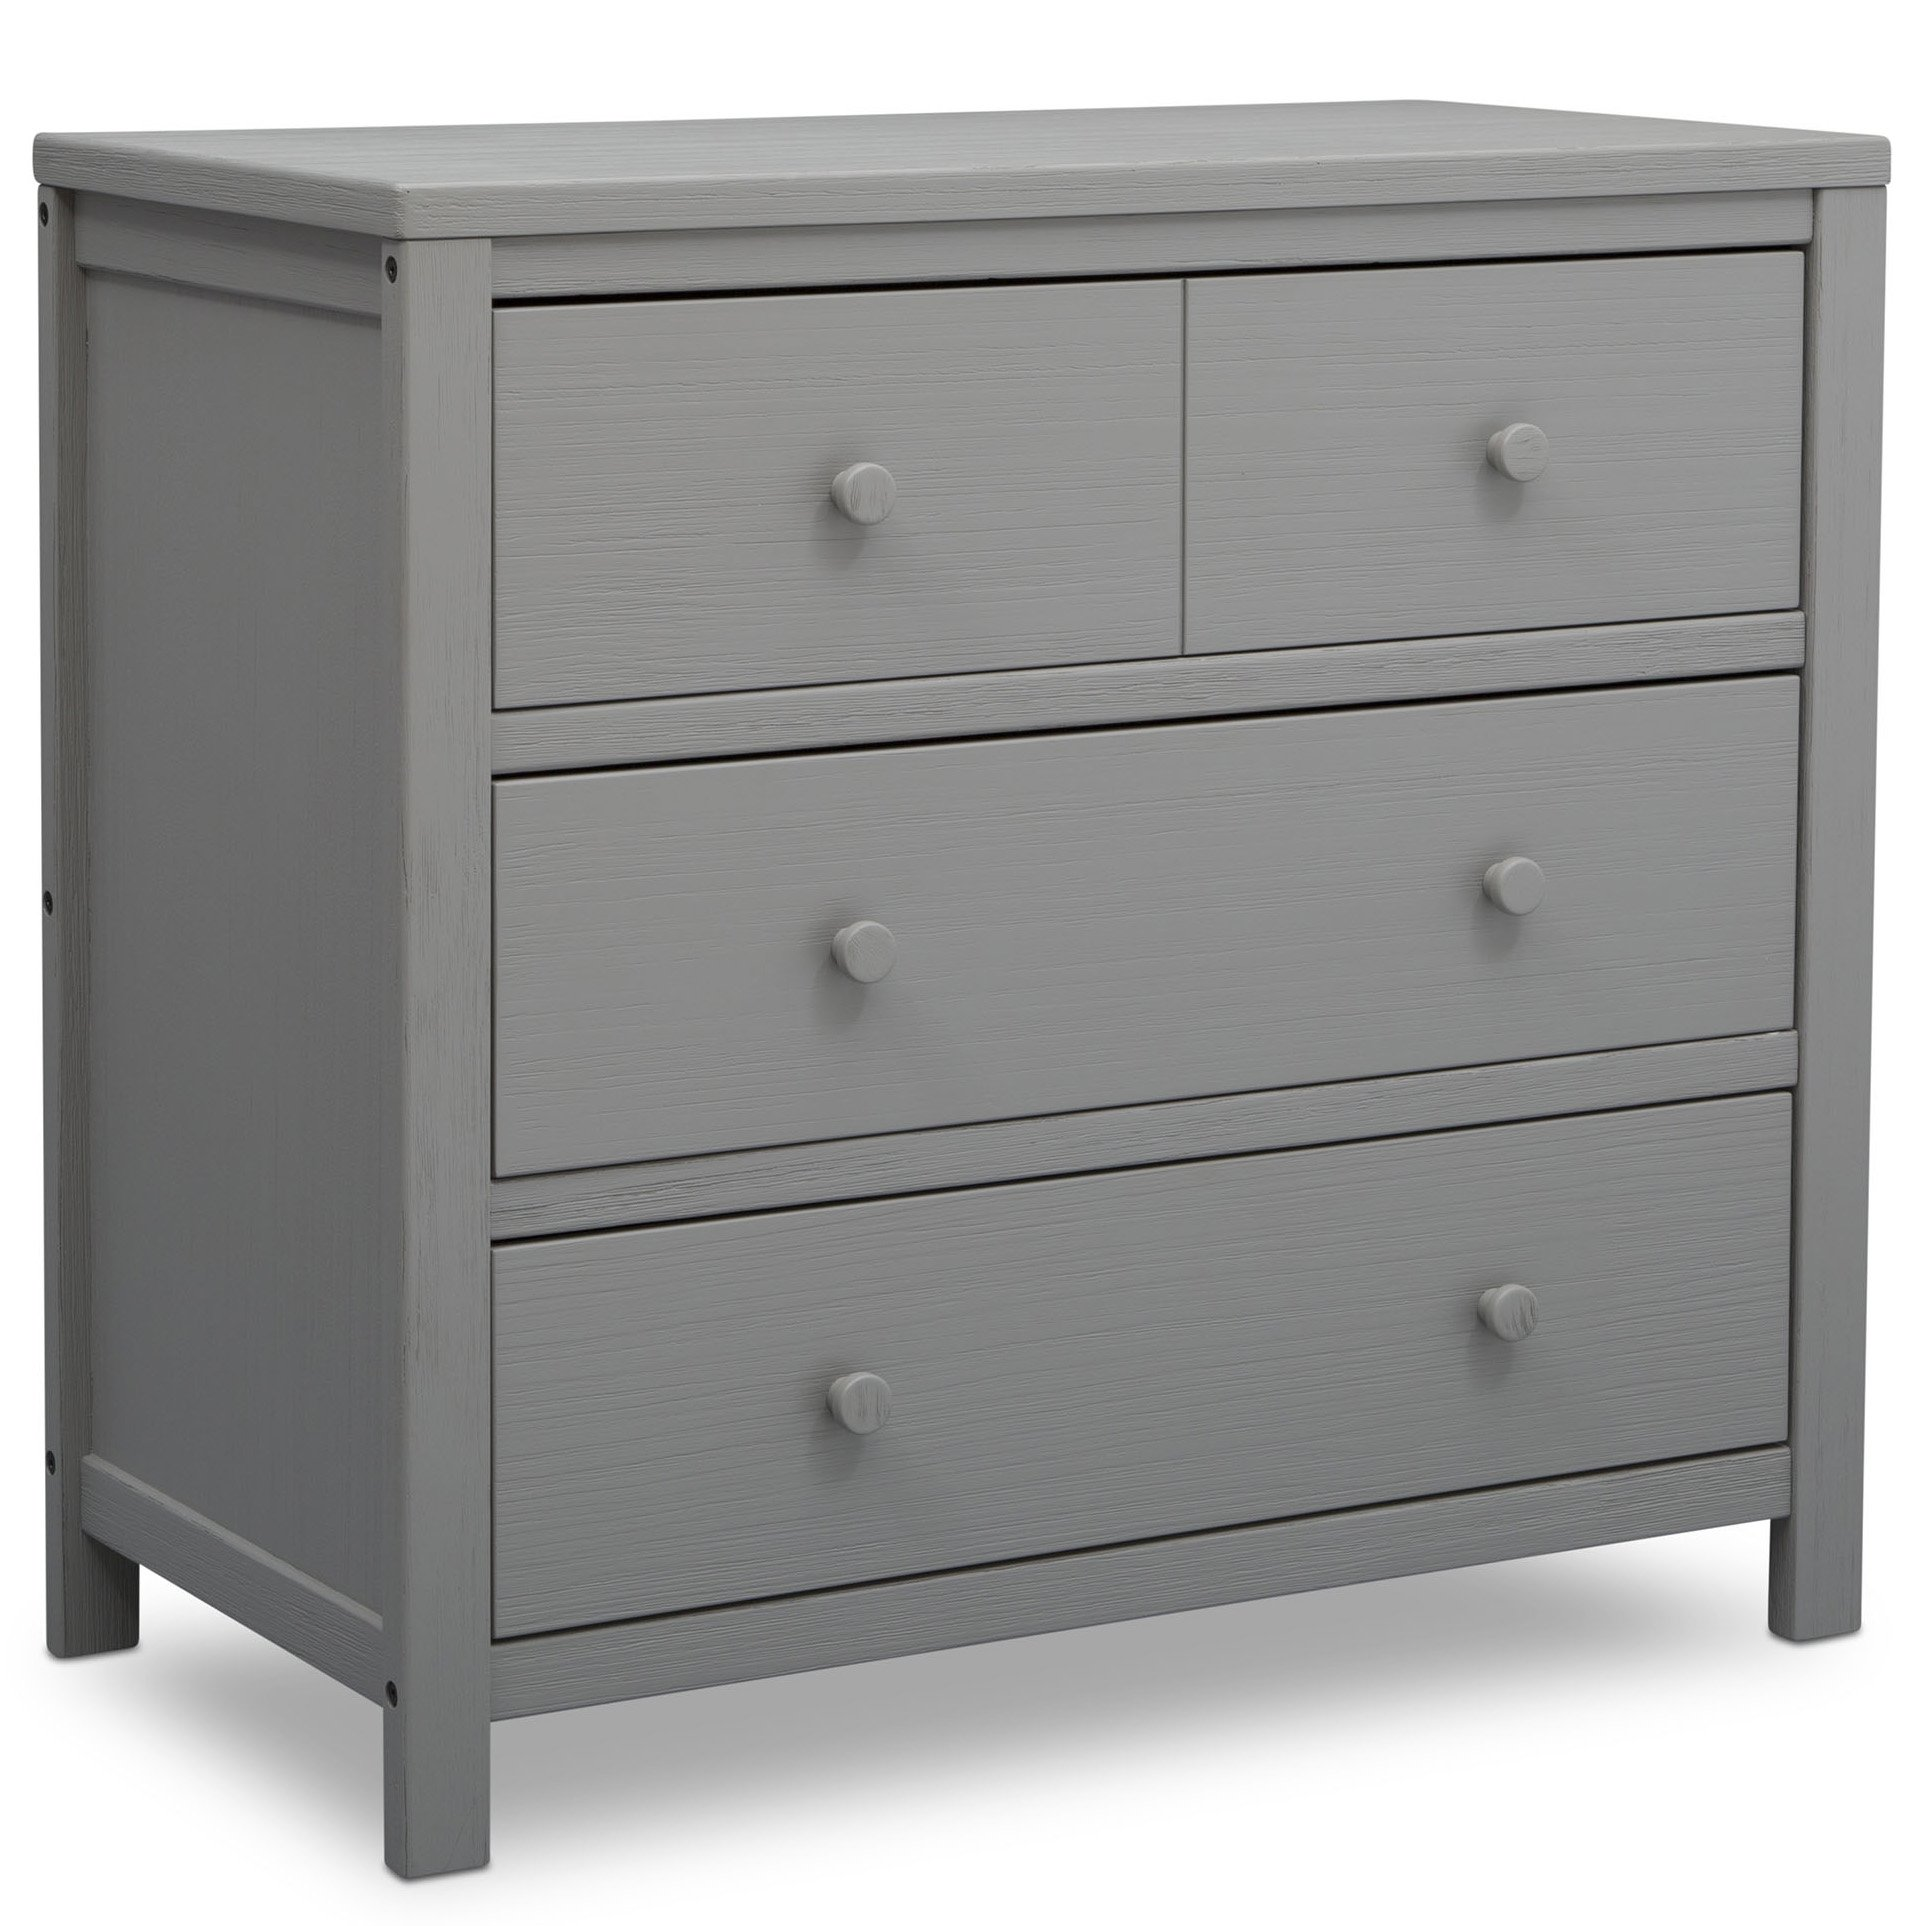 Amazon Com Delta Children Farmhouse 4 Drawer Chest